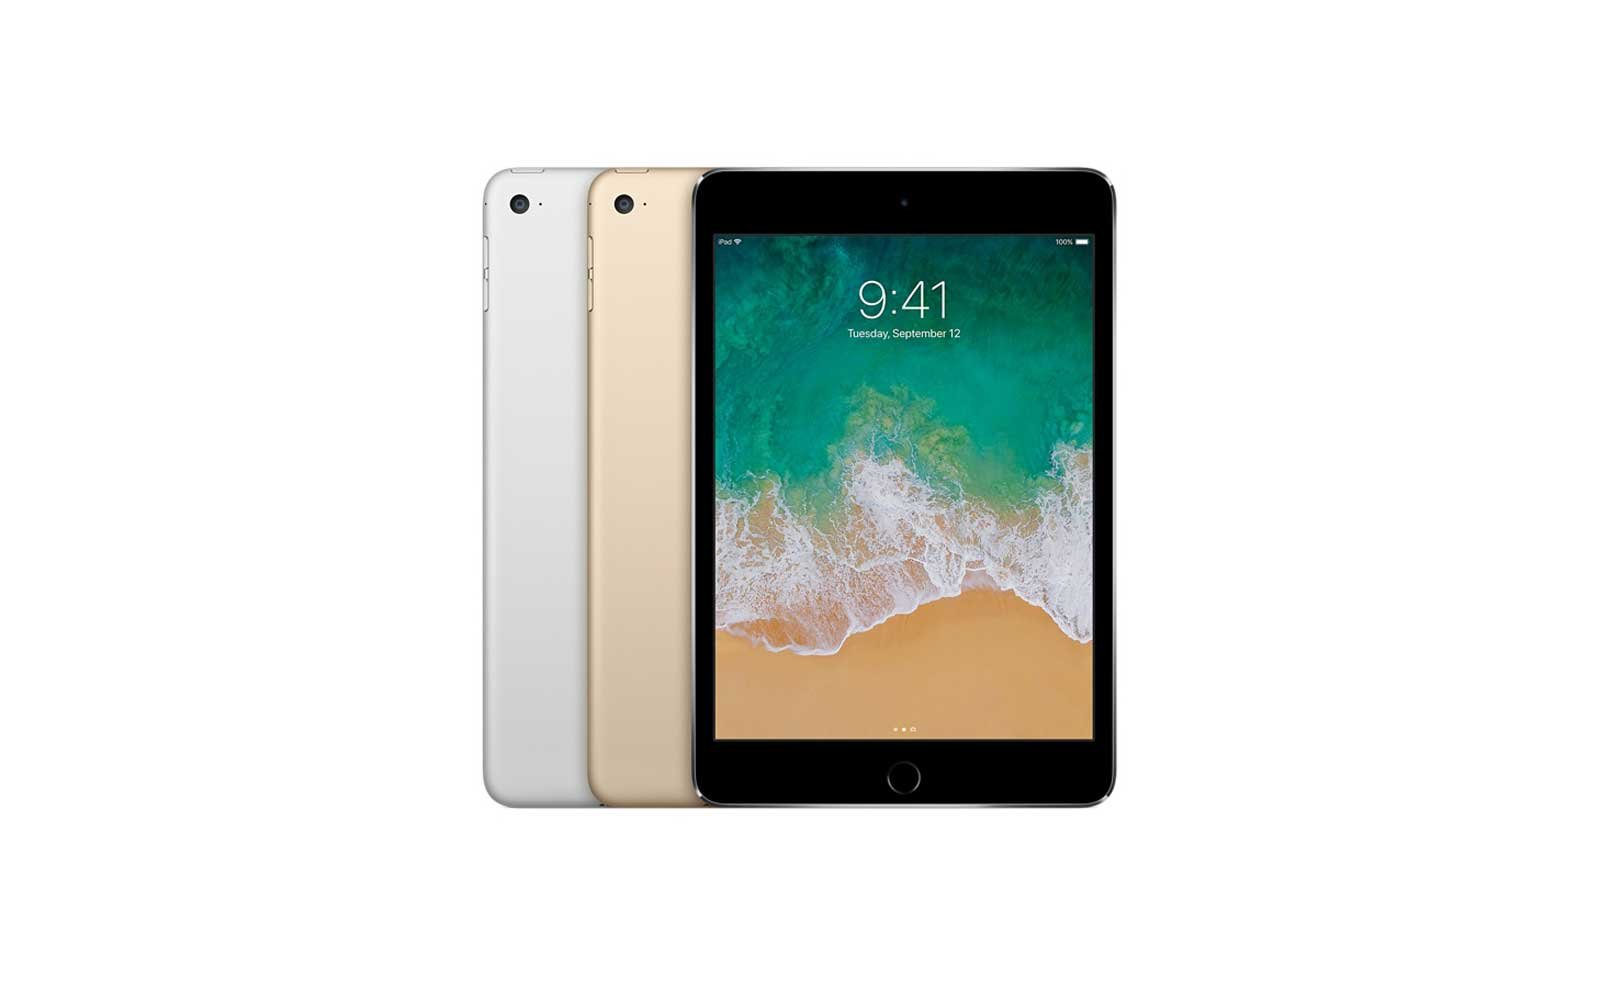 Apple Mini iPad 4